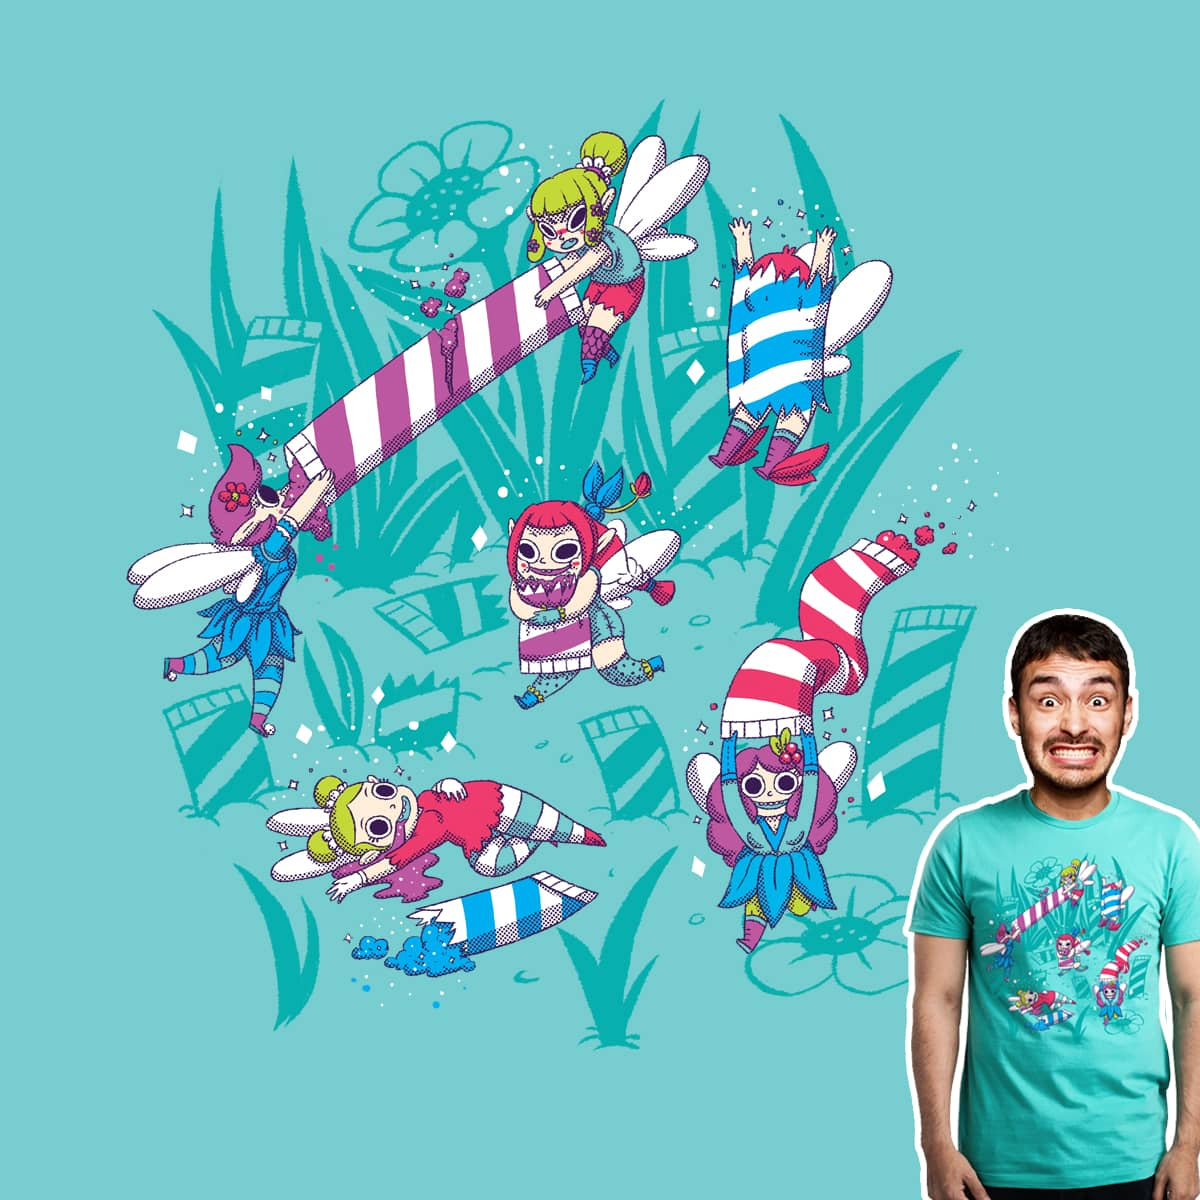 Pixies Eating Pixie Sticks by TheInfamousBaka and FRICKINAWESOME on Threadless